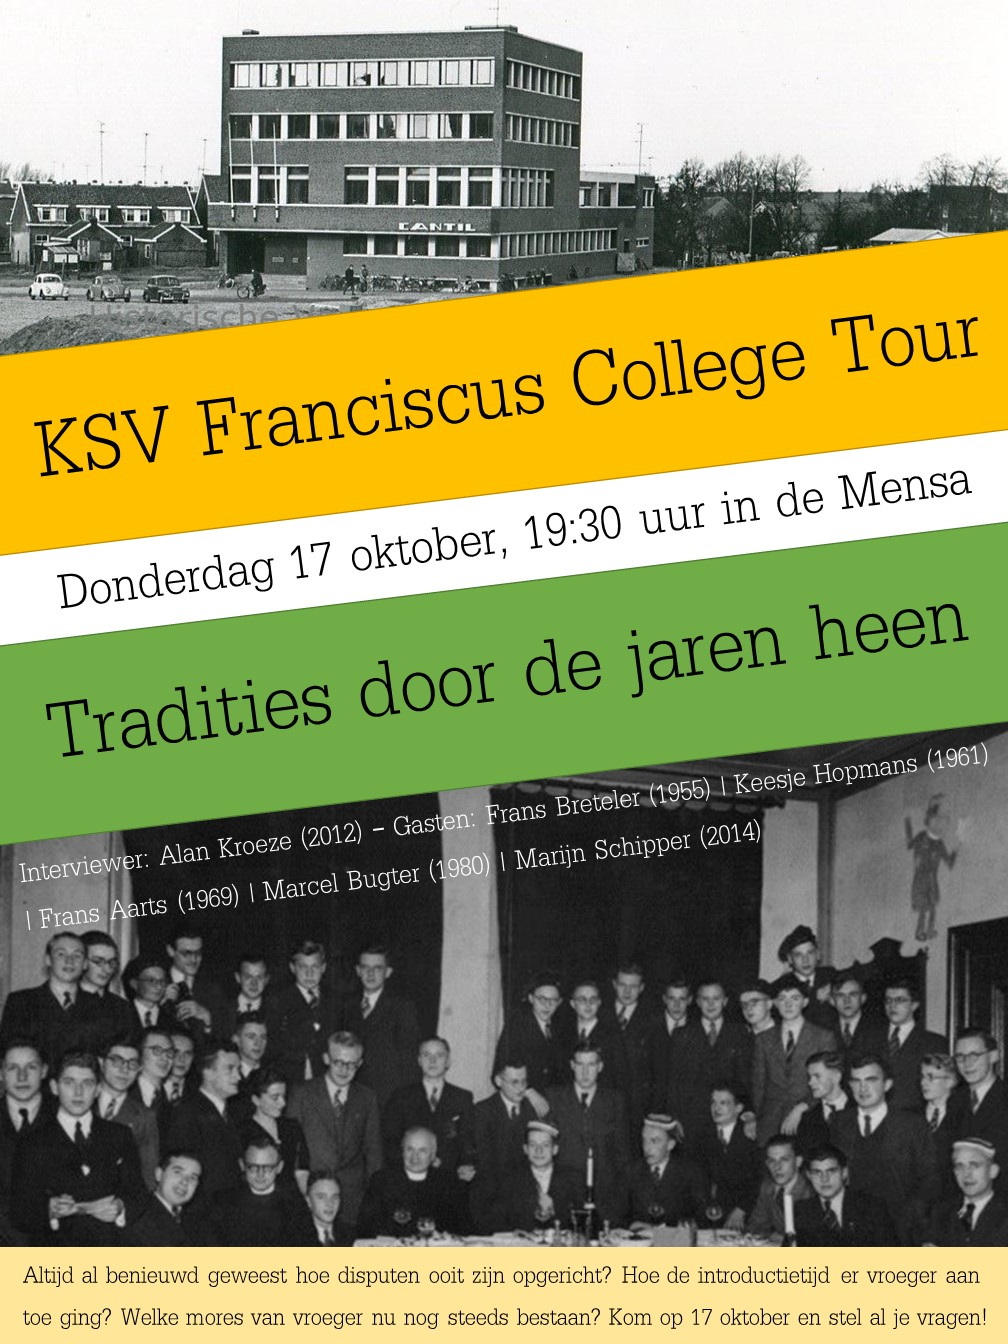 K.S.V. Franciscus: College Tour